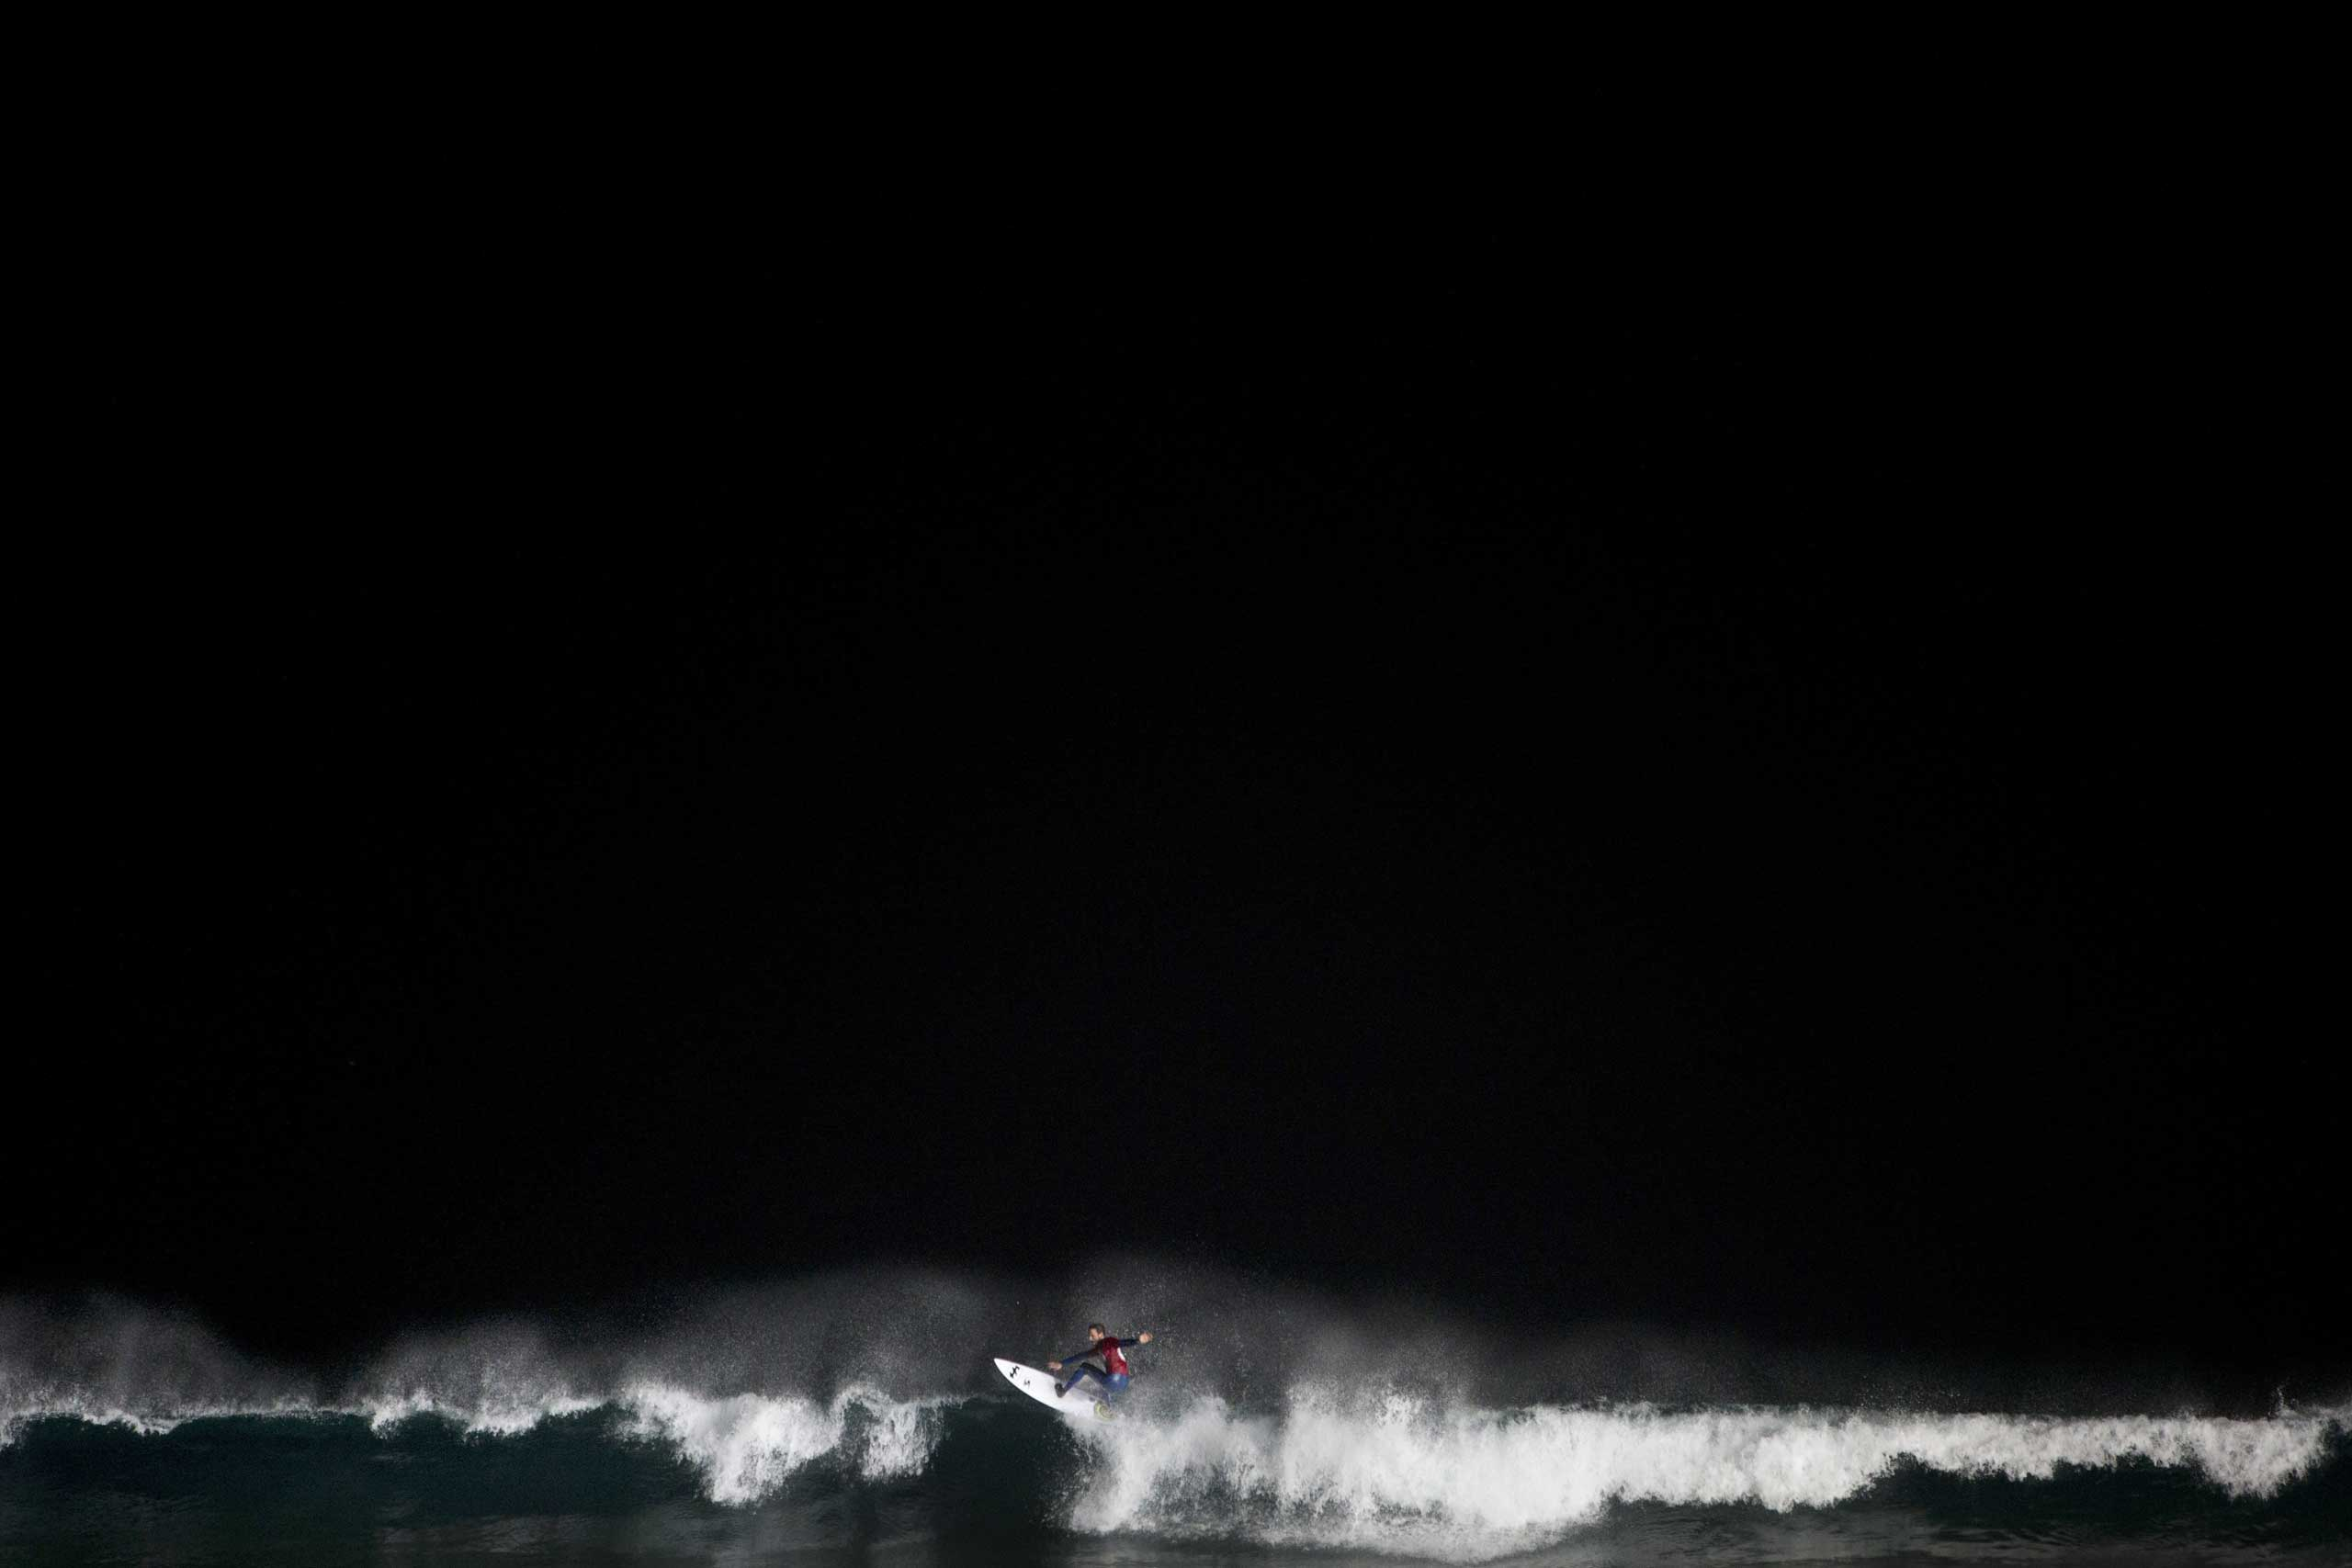 Feb. 4, 2015. An Israeli surfer catches a wave during a night surfing competition in the Mediterranean sea in Ashdod, southern Israel. About 40 surfers participated in the competition.